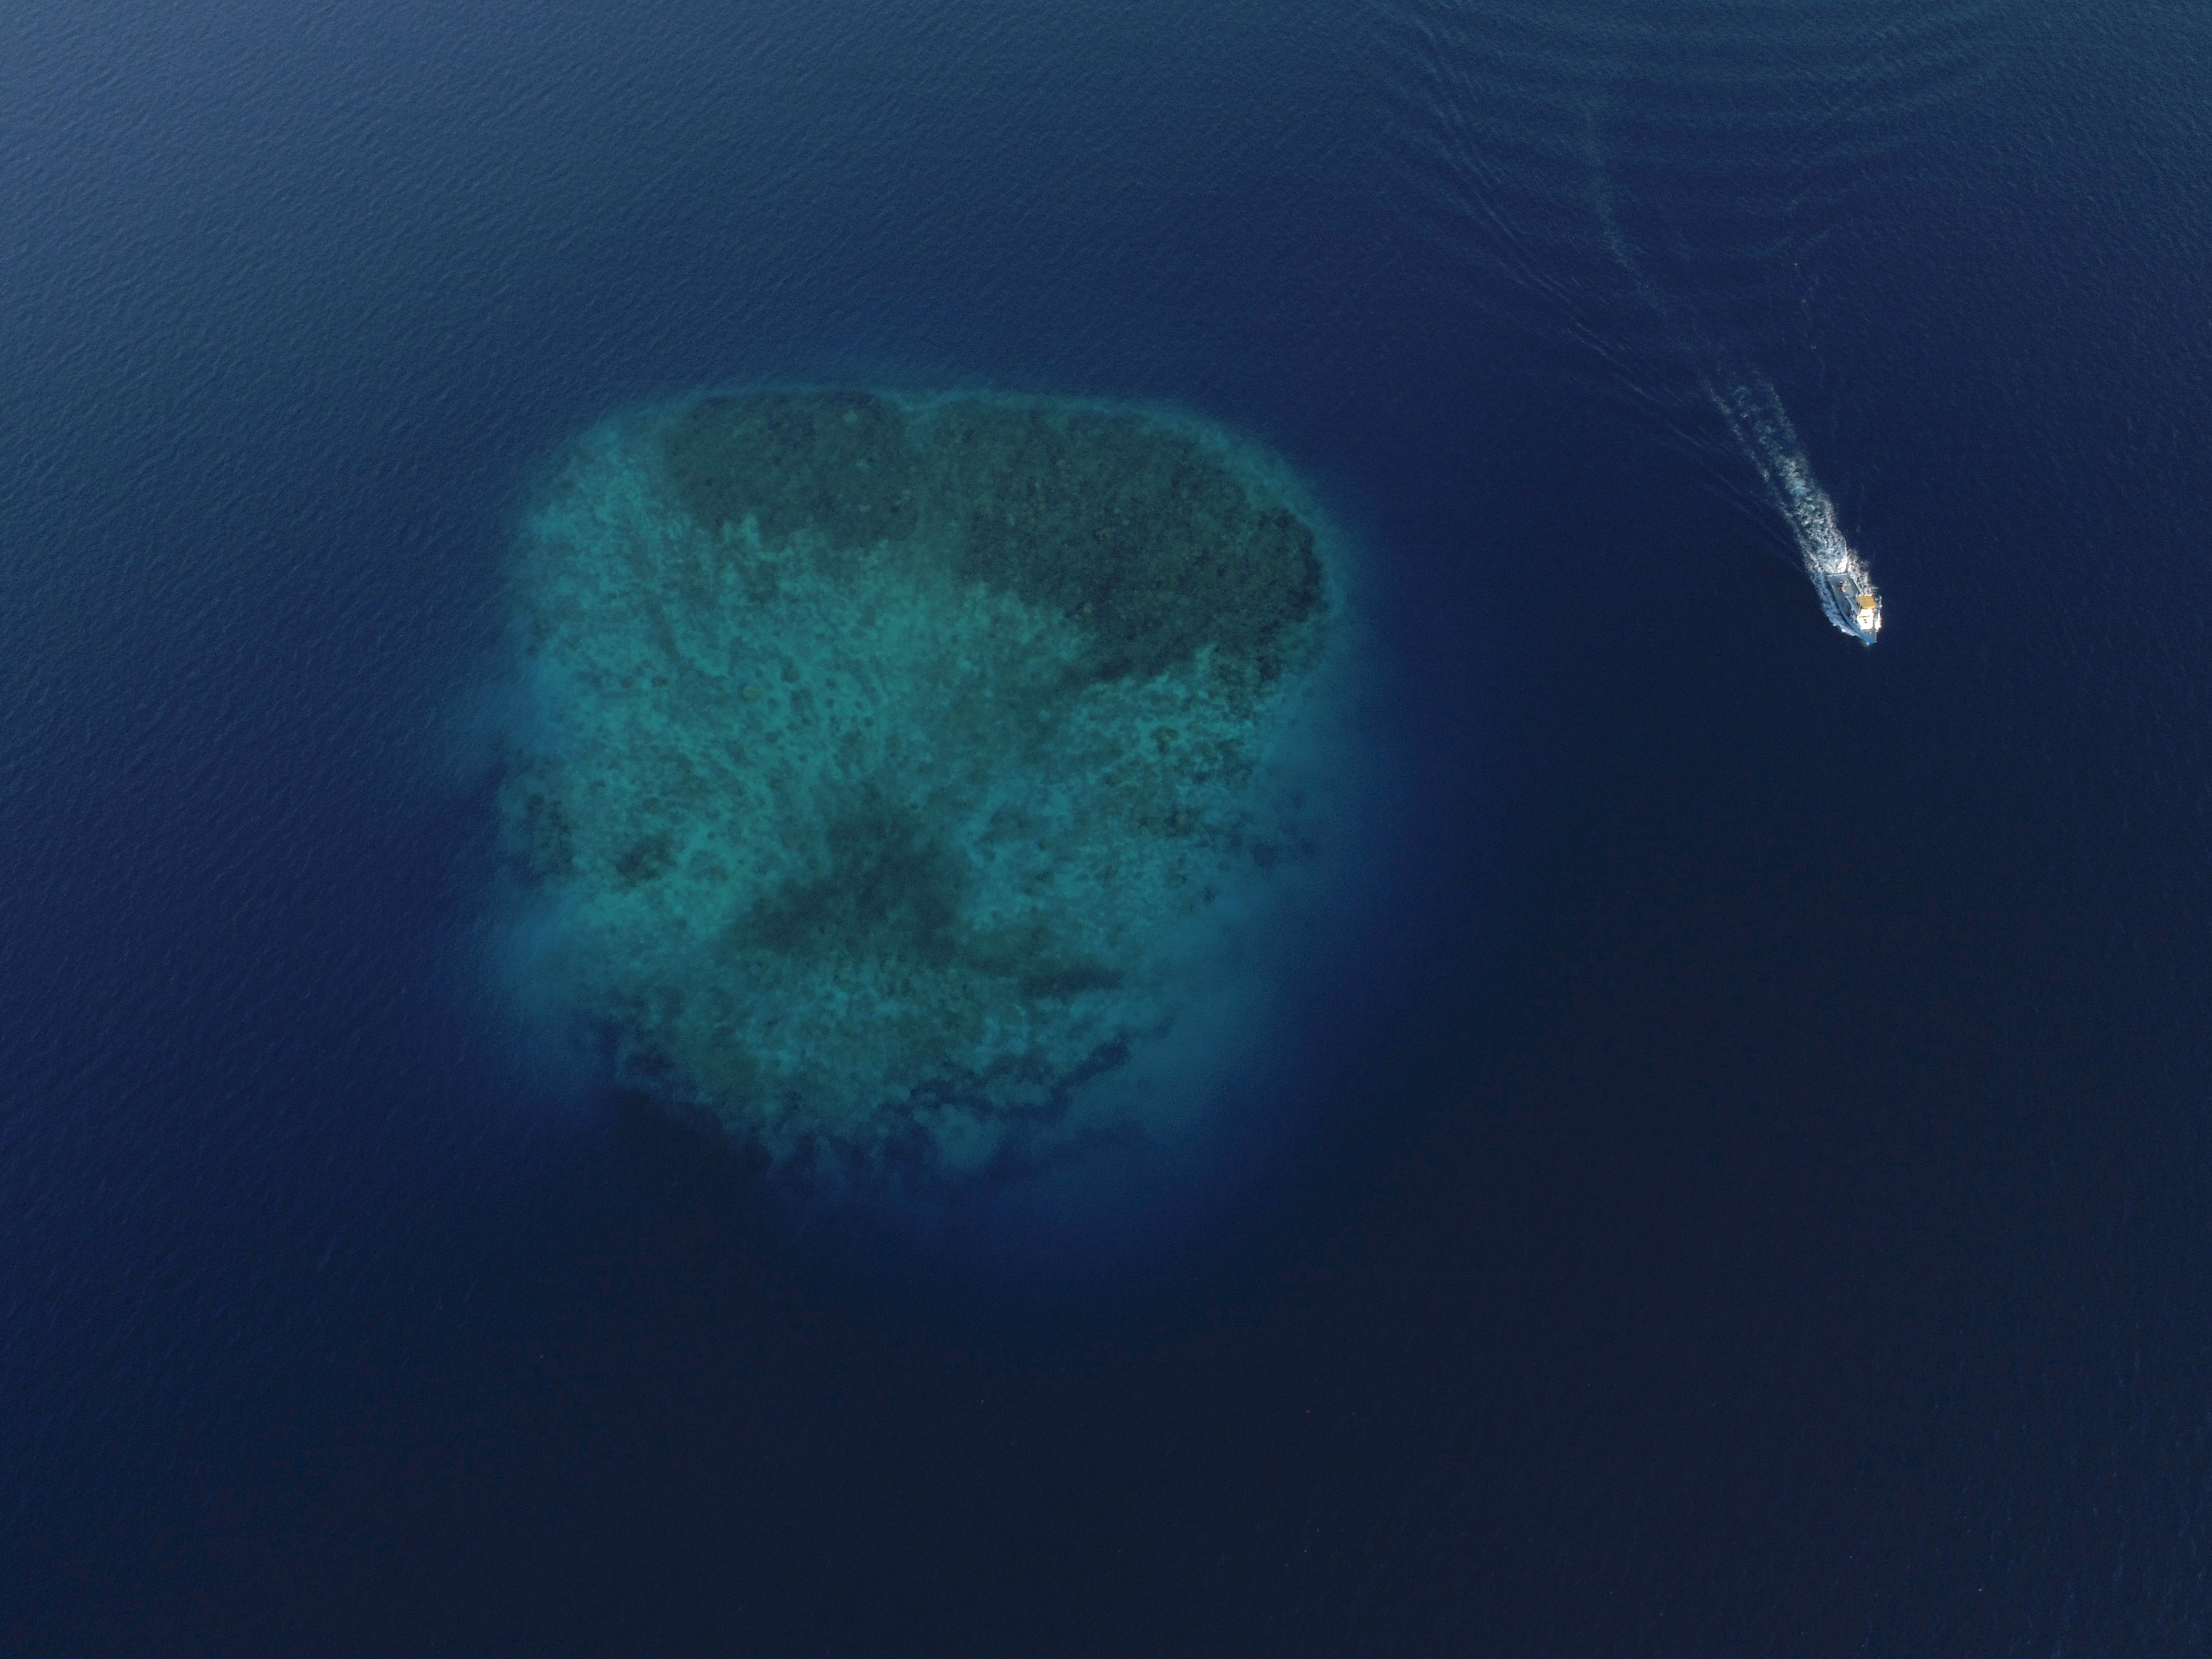 aerial photograph of boat near island under water